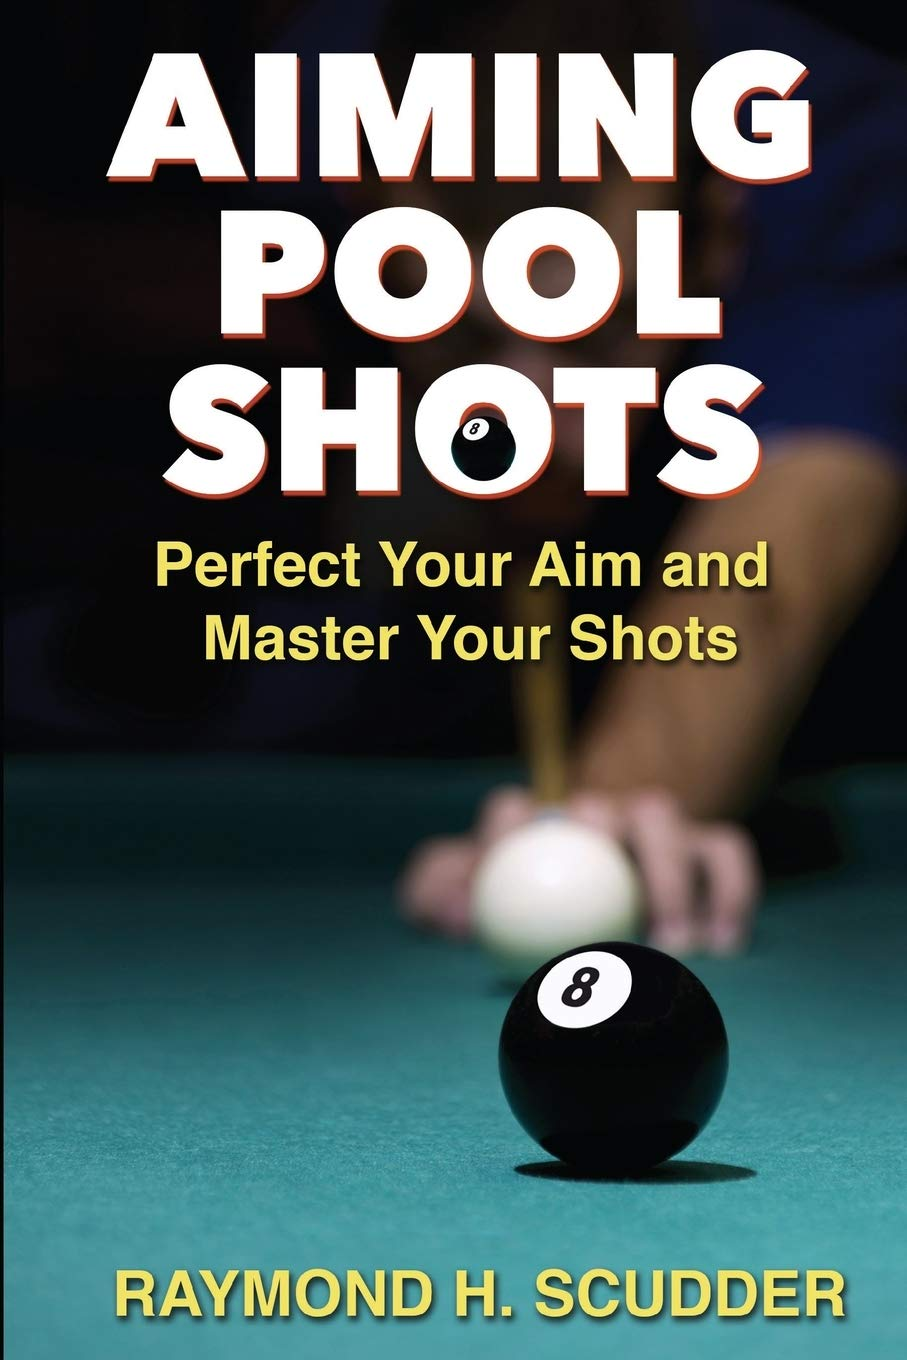 AIMING POOL SHOTS: Perfect Your Aim and Master Your Shots: Amazon ...